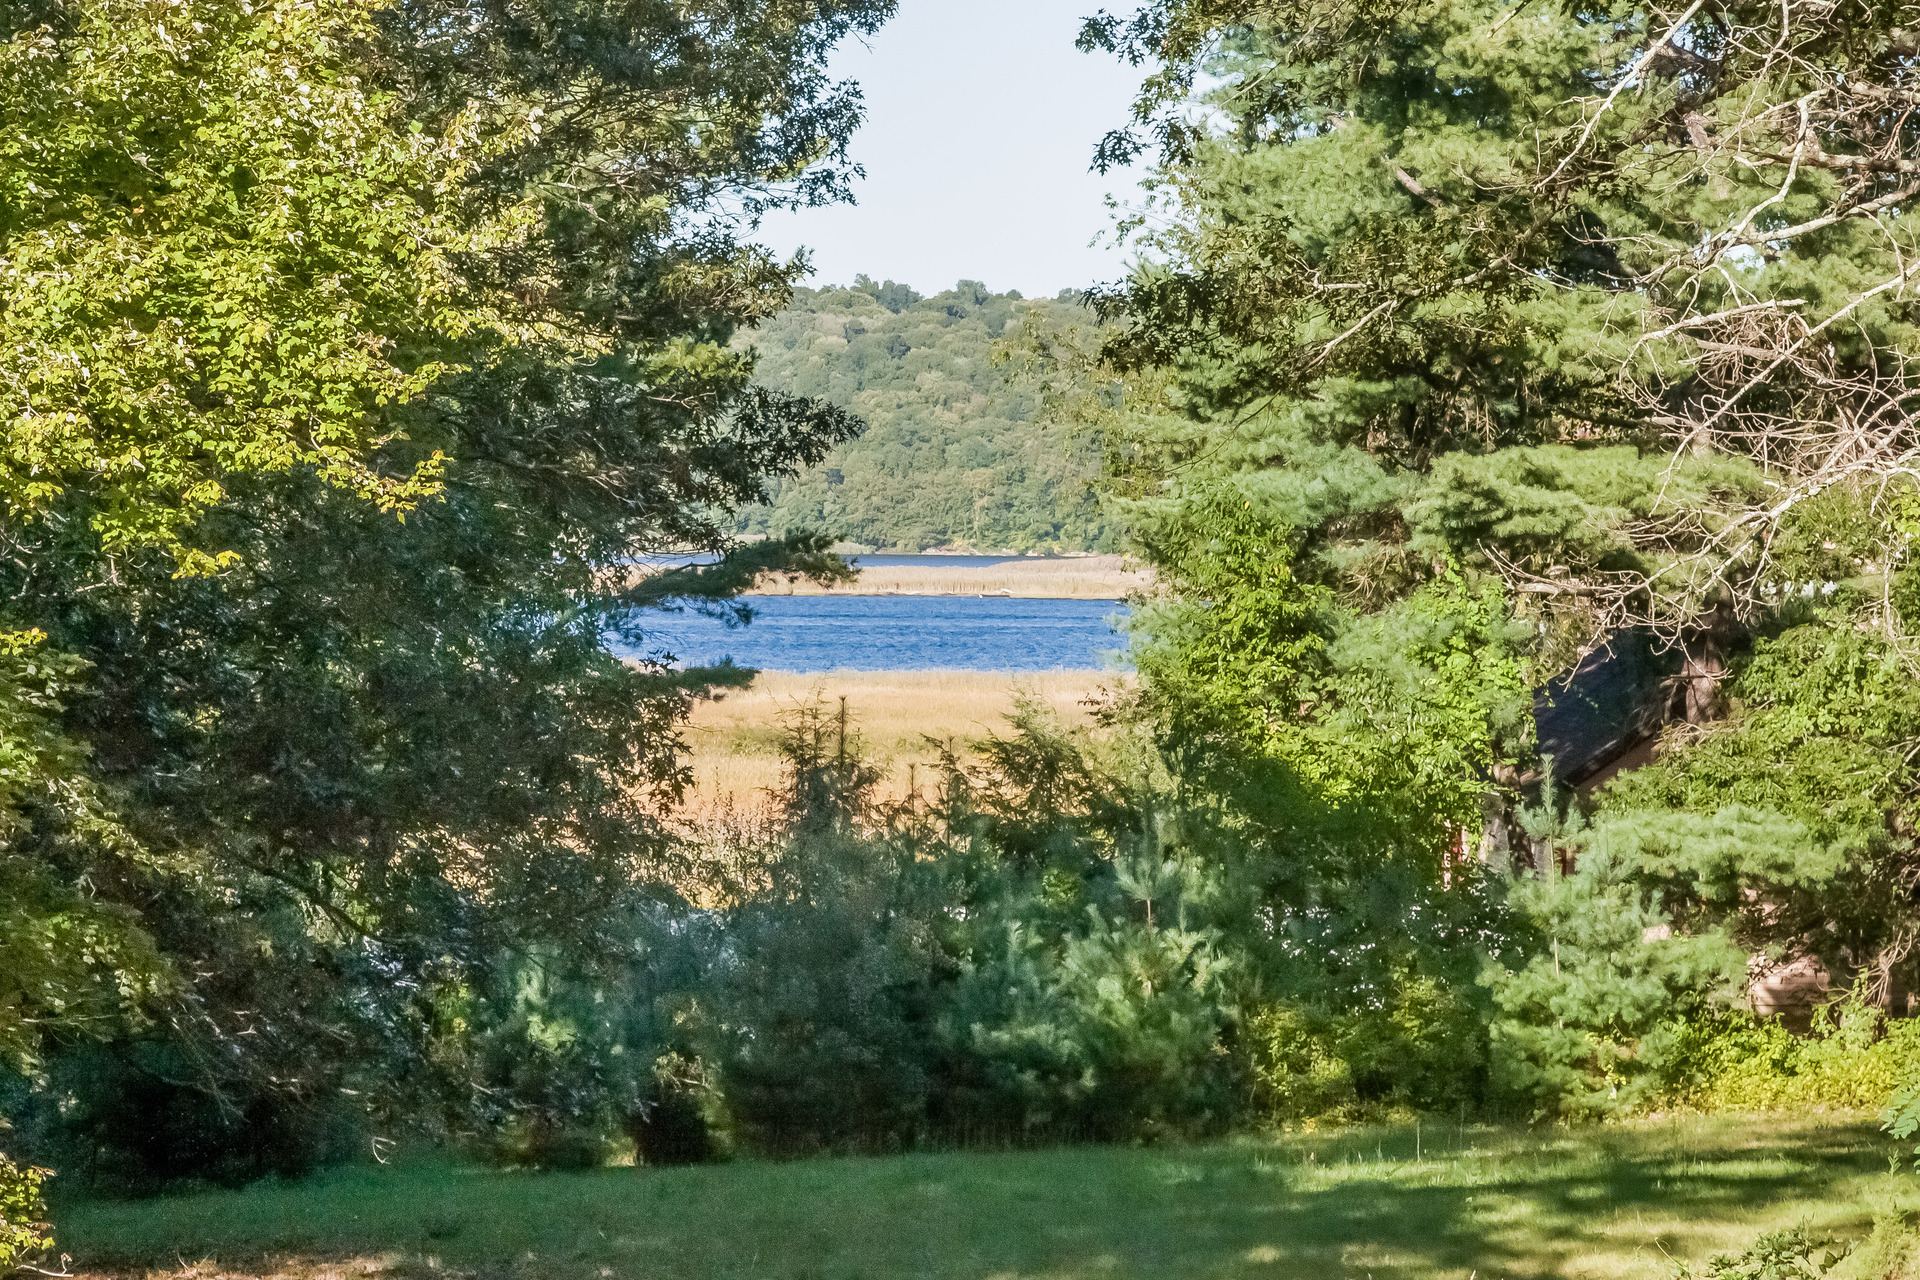 Single Family Home for Sale at Fabulous Water Views 66 Otter Cove Drive Old Saybrook, Connecticut, 06475 United States